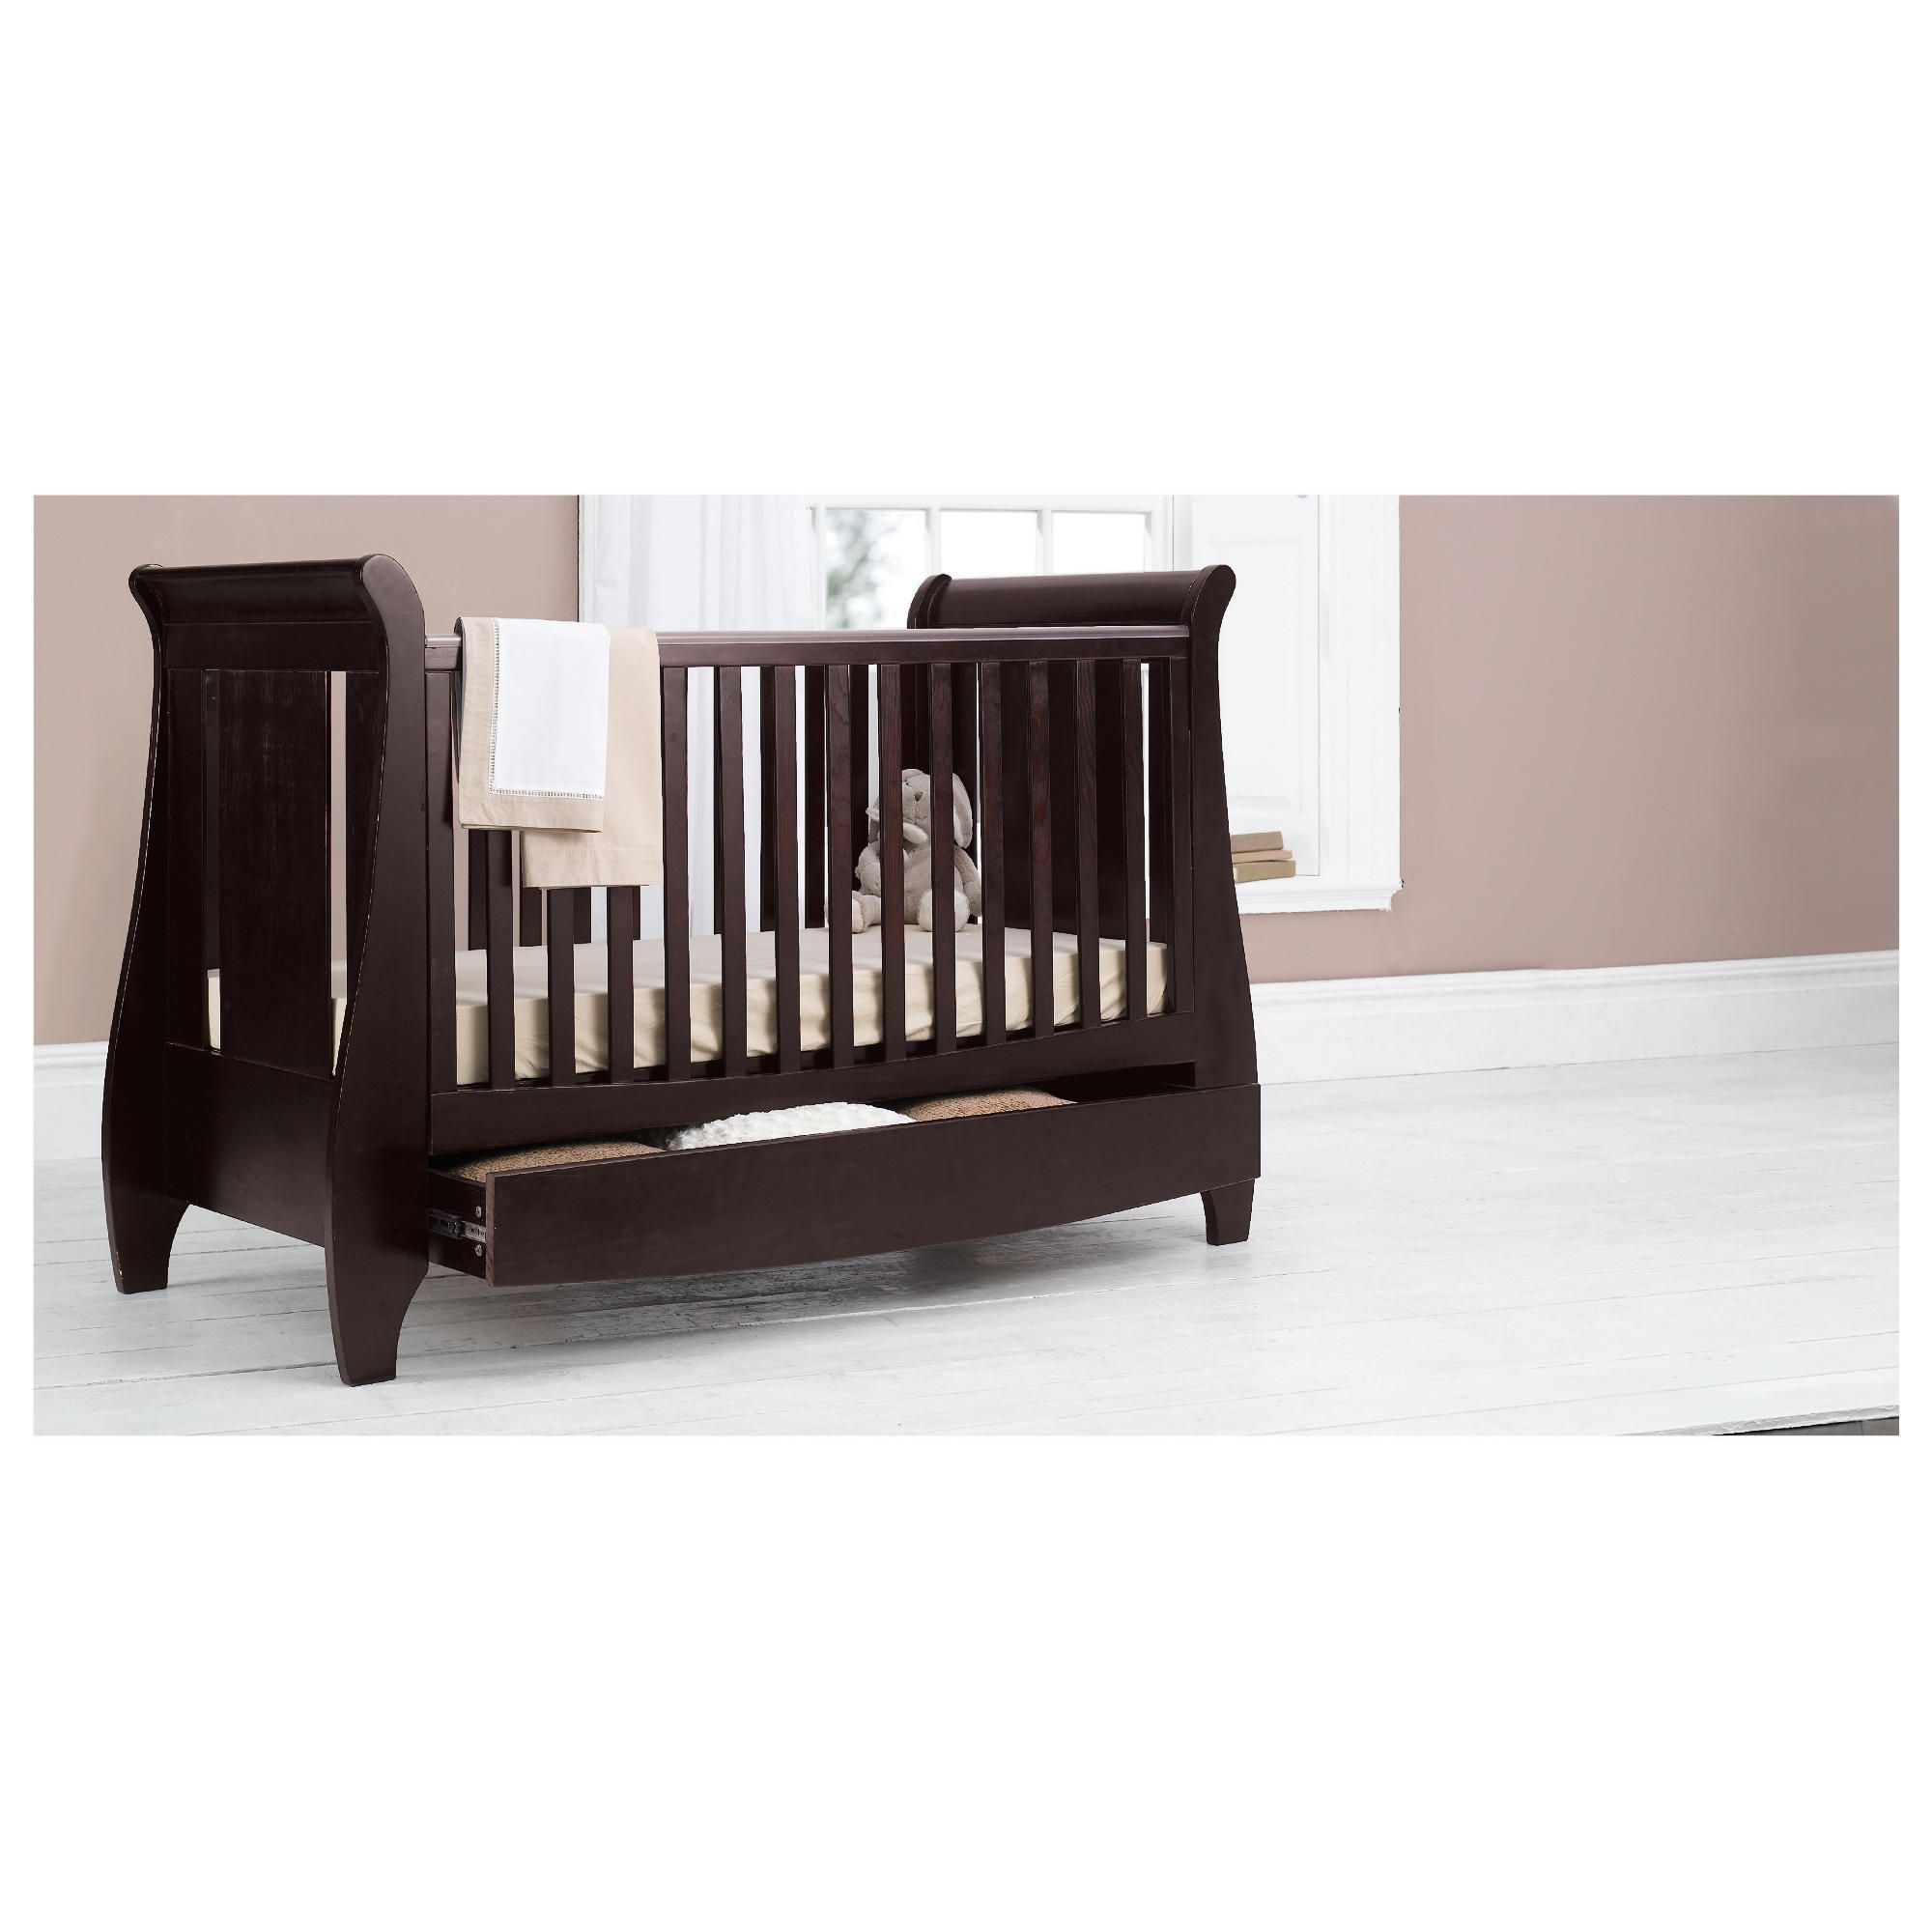 Tutti Bambini Lucas Dropside Sleigh Cot Bed, Espresso at Tesco Direct